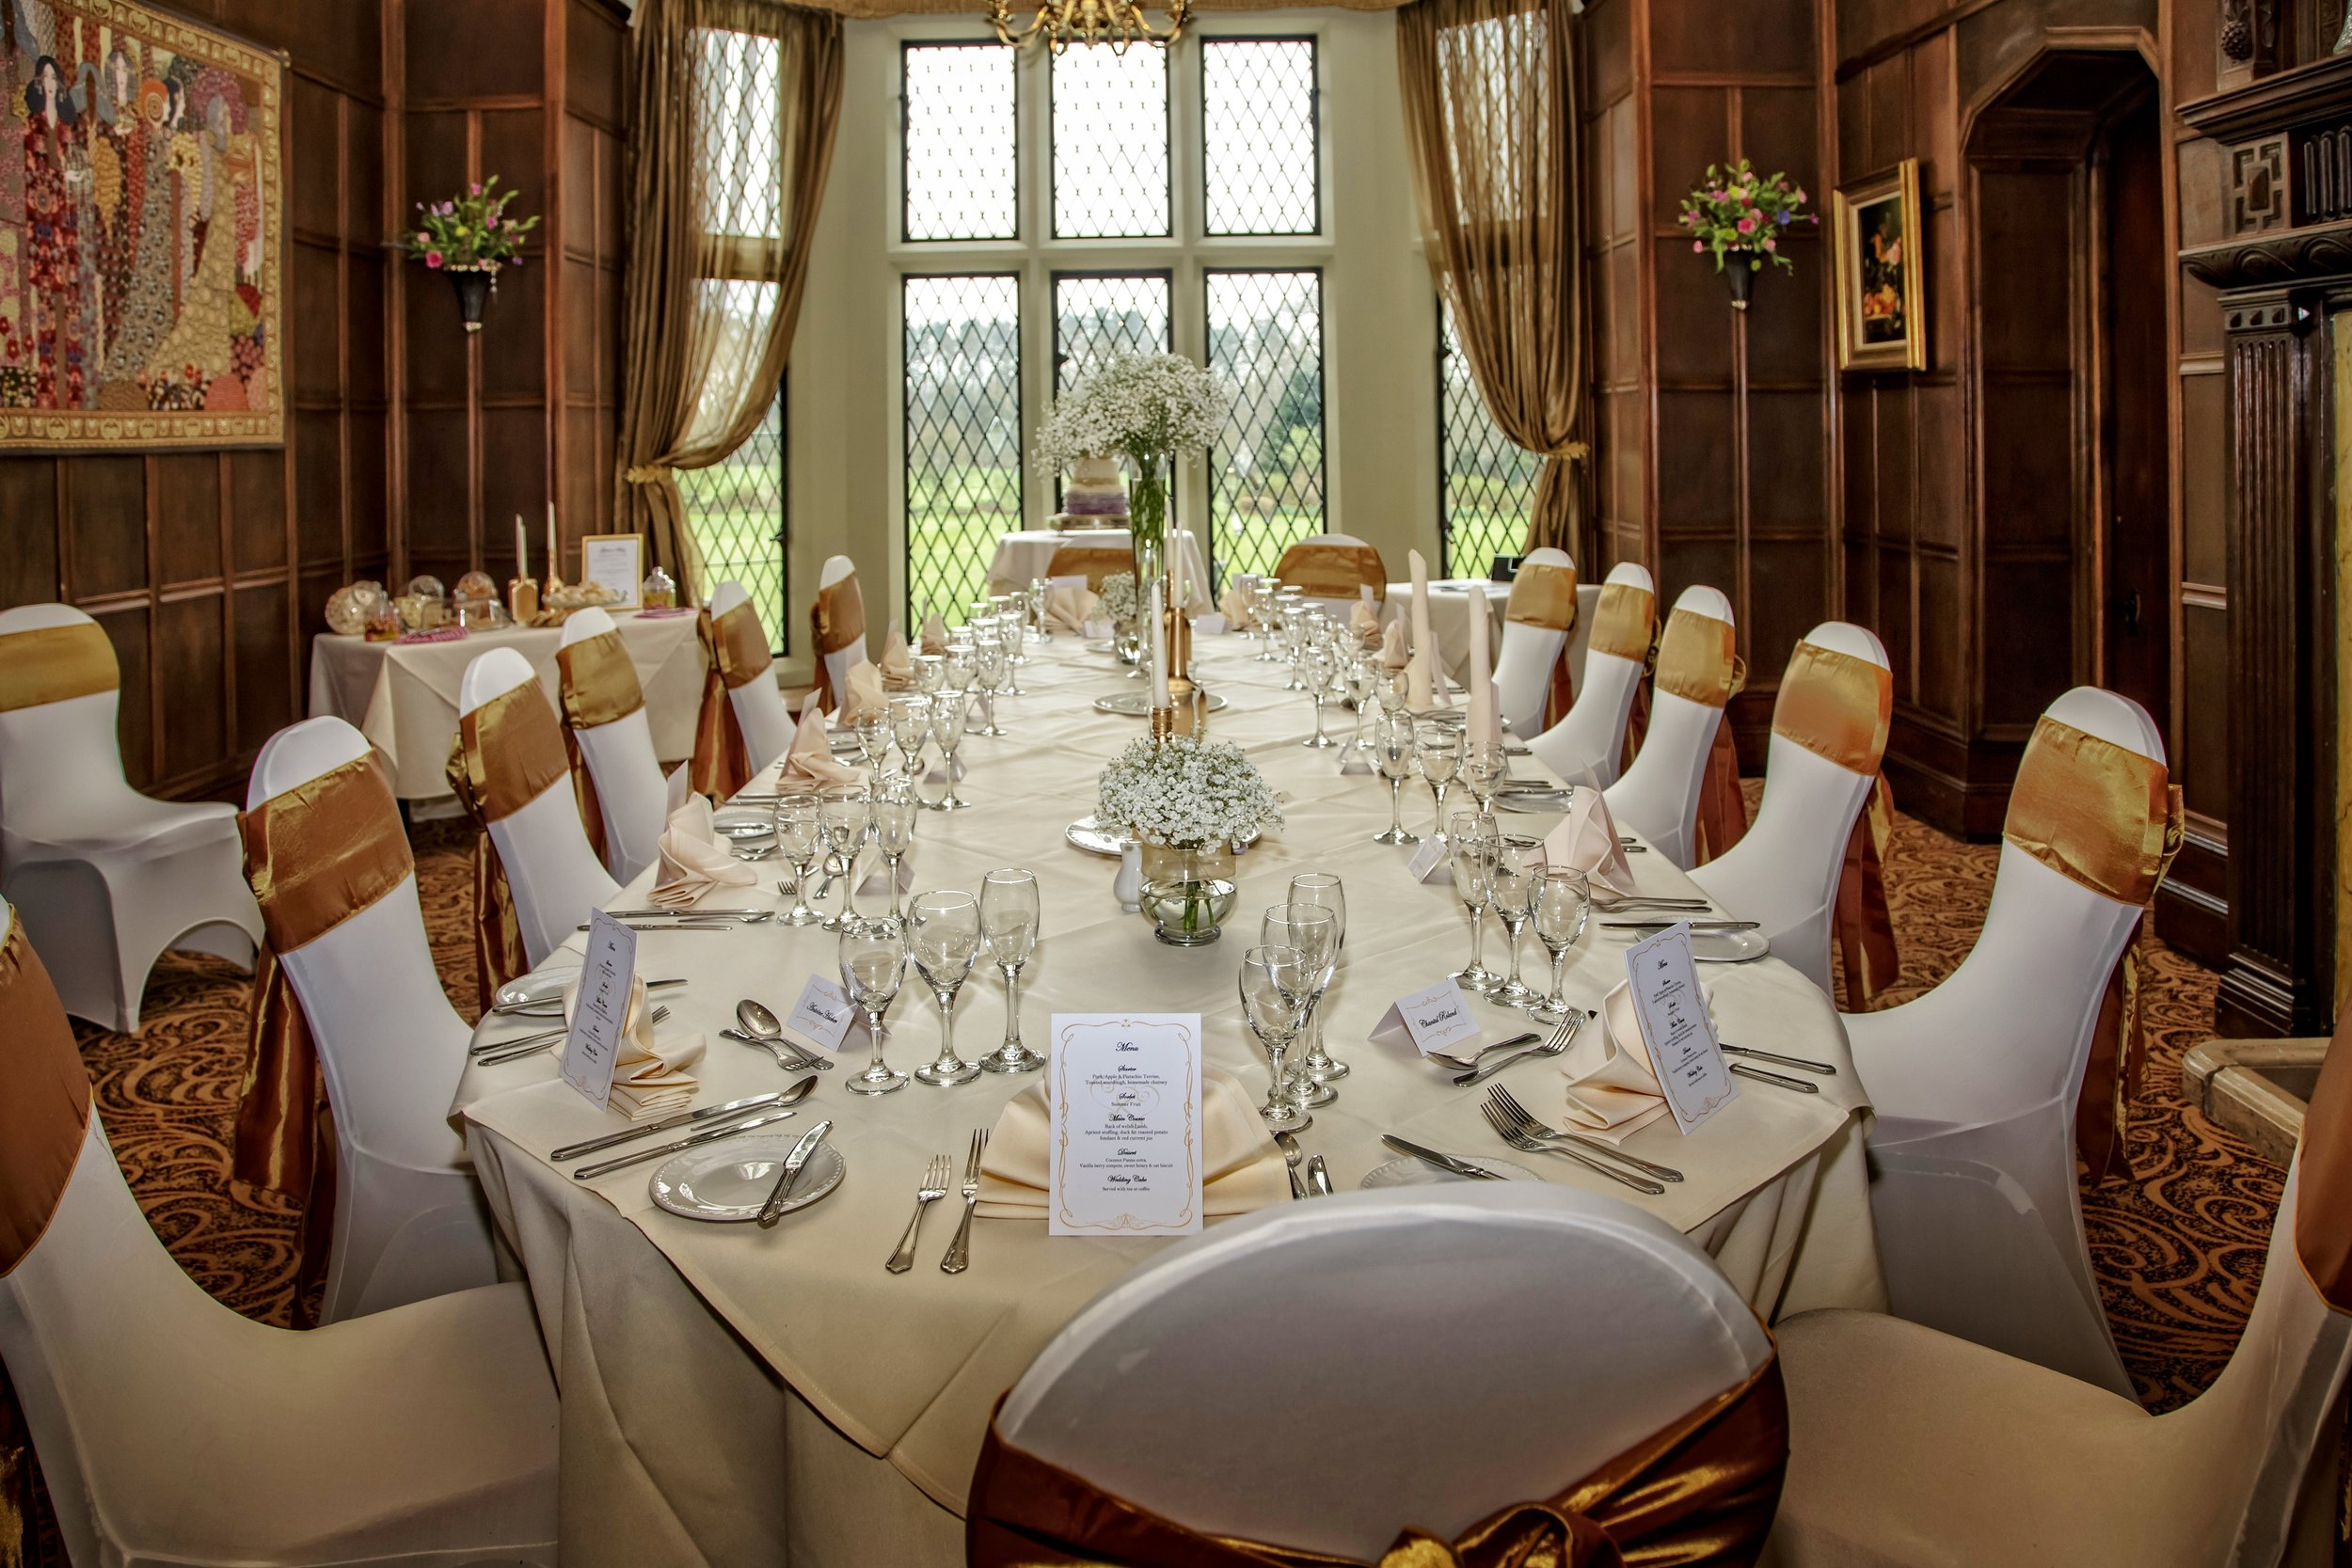 wedding chair covers pontypridd stylish desk chairs planning venue decoration specialists i cardiff south wales aicha and julian 005 jpg